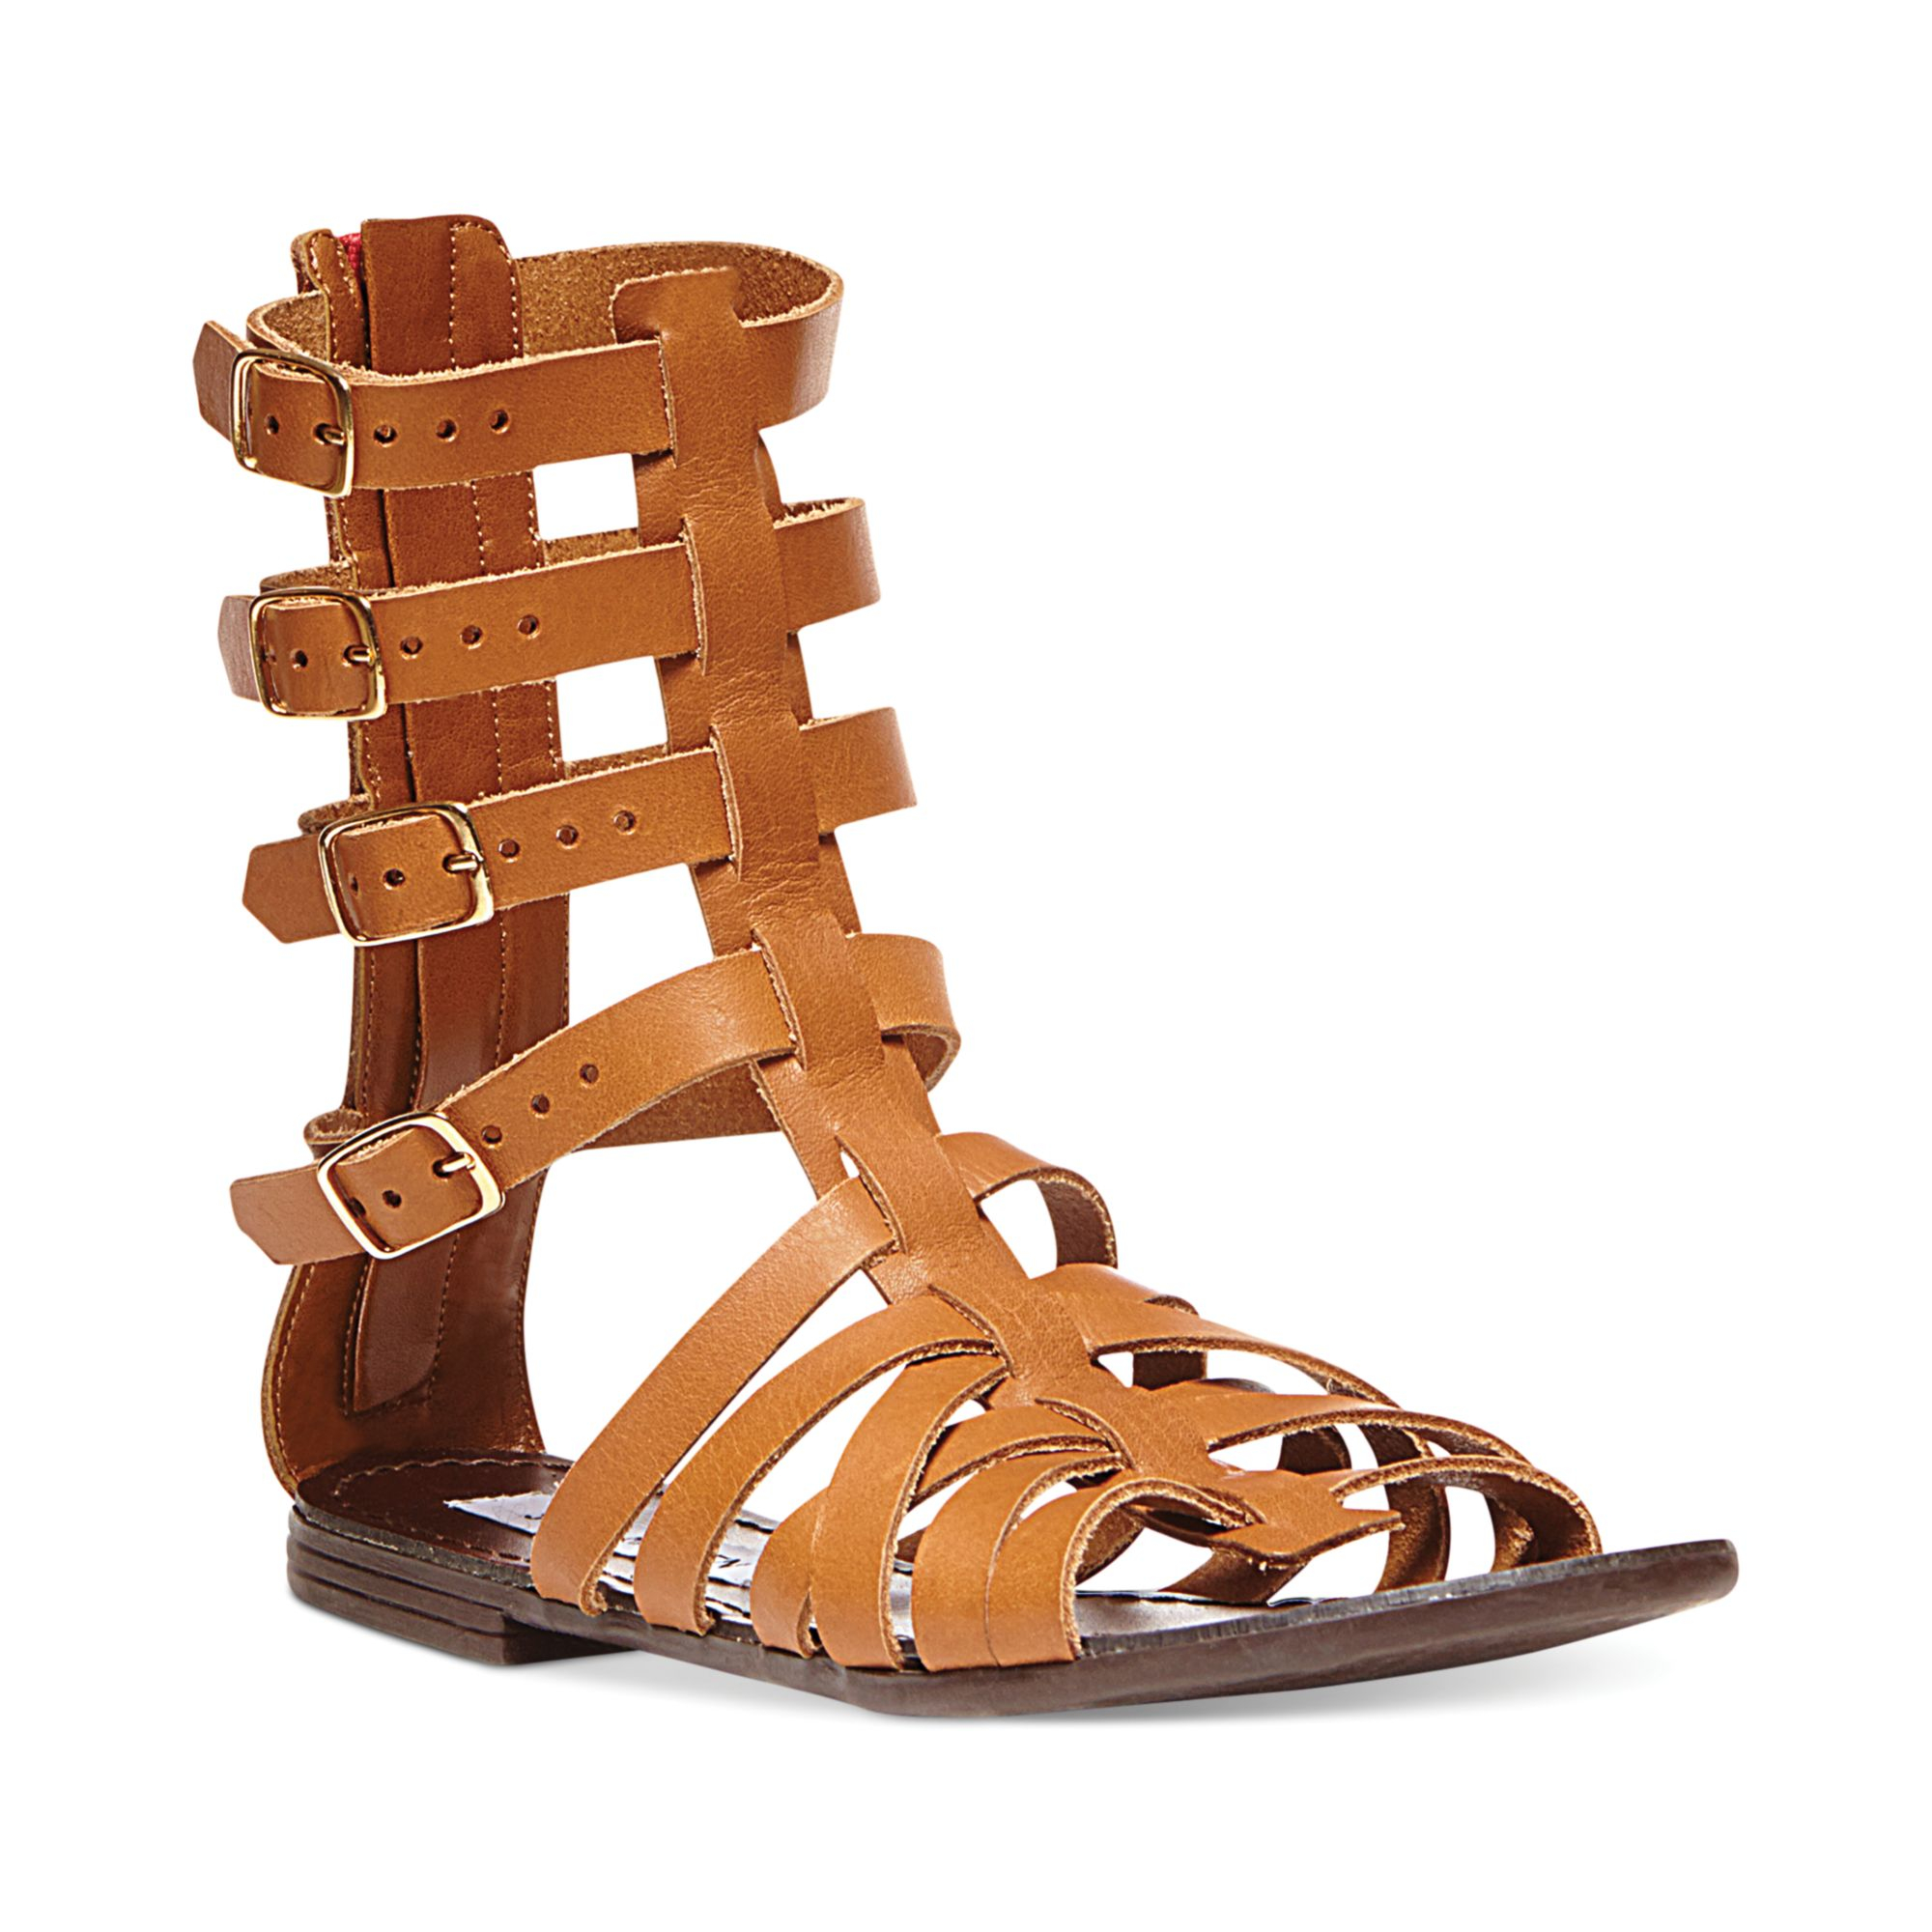 c0a82f9ac7cb Brown Gladiator Sandals for Women